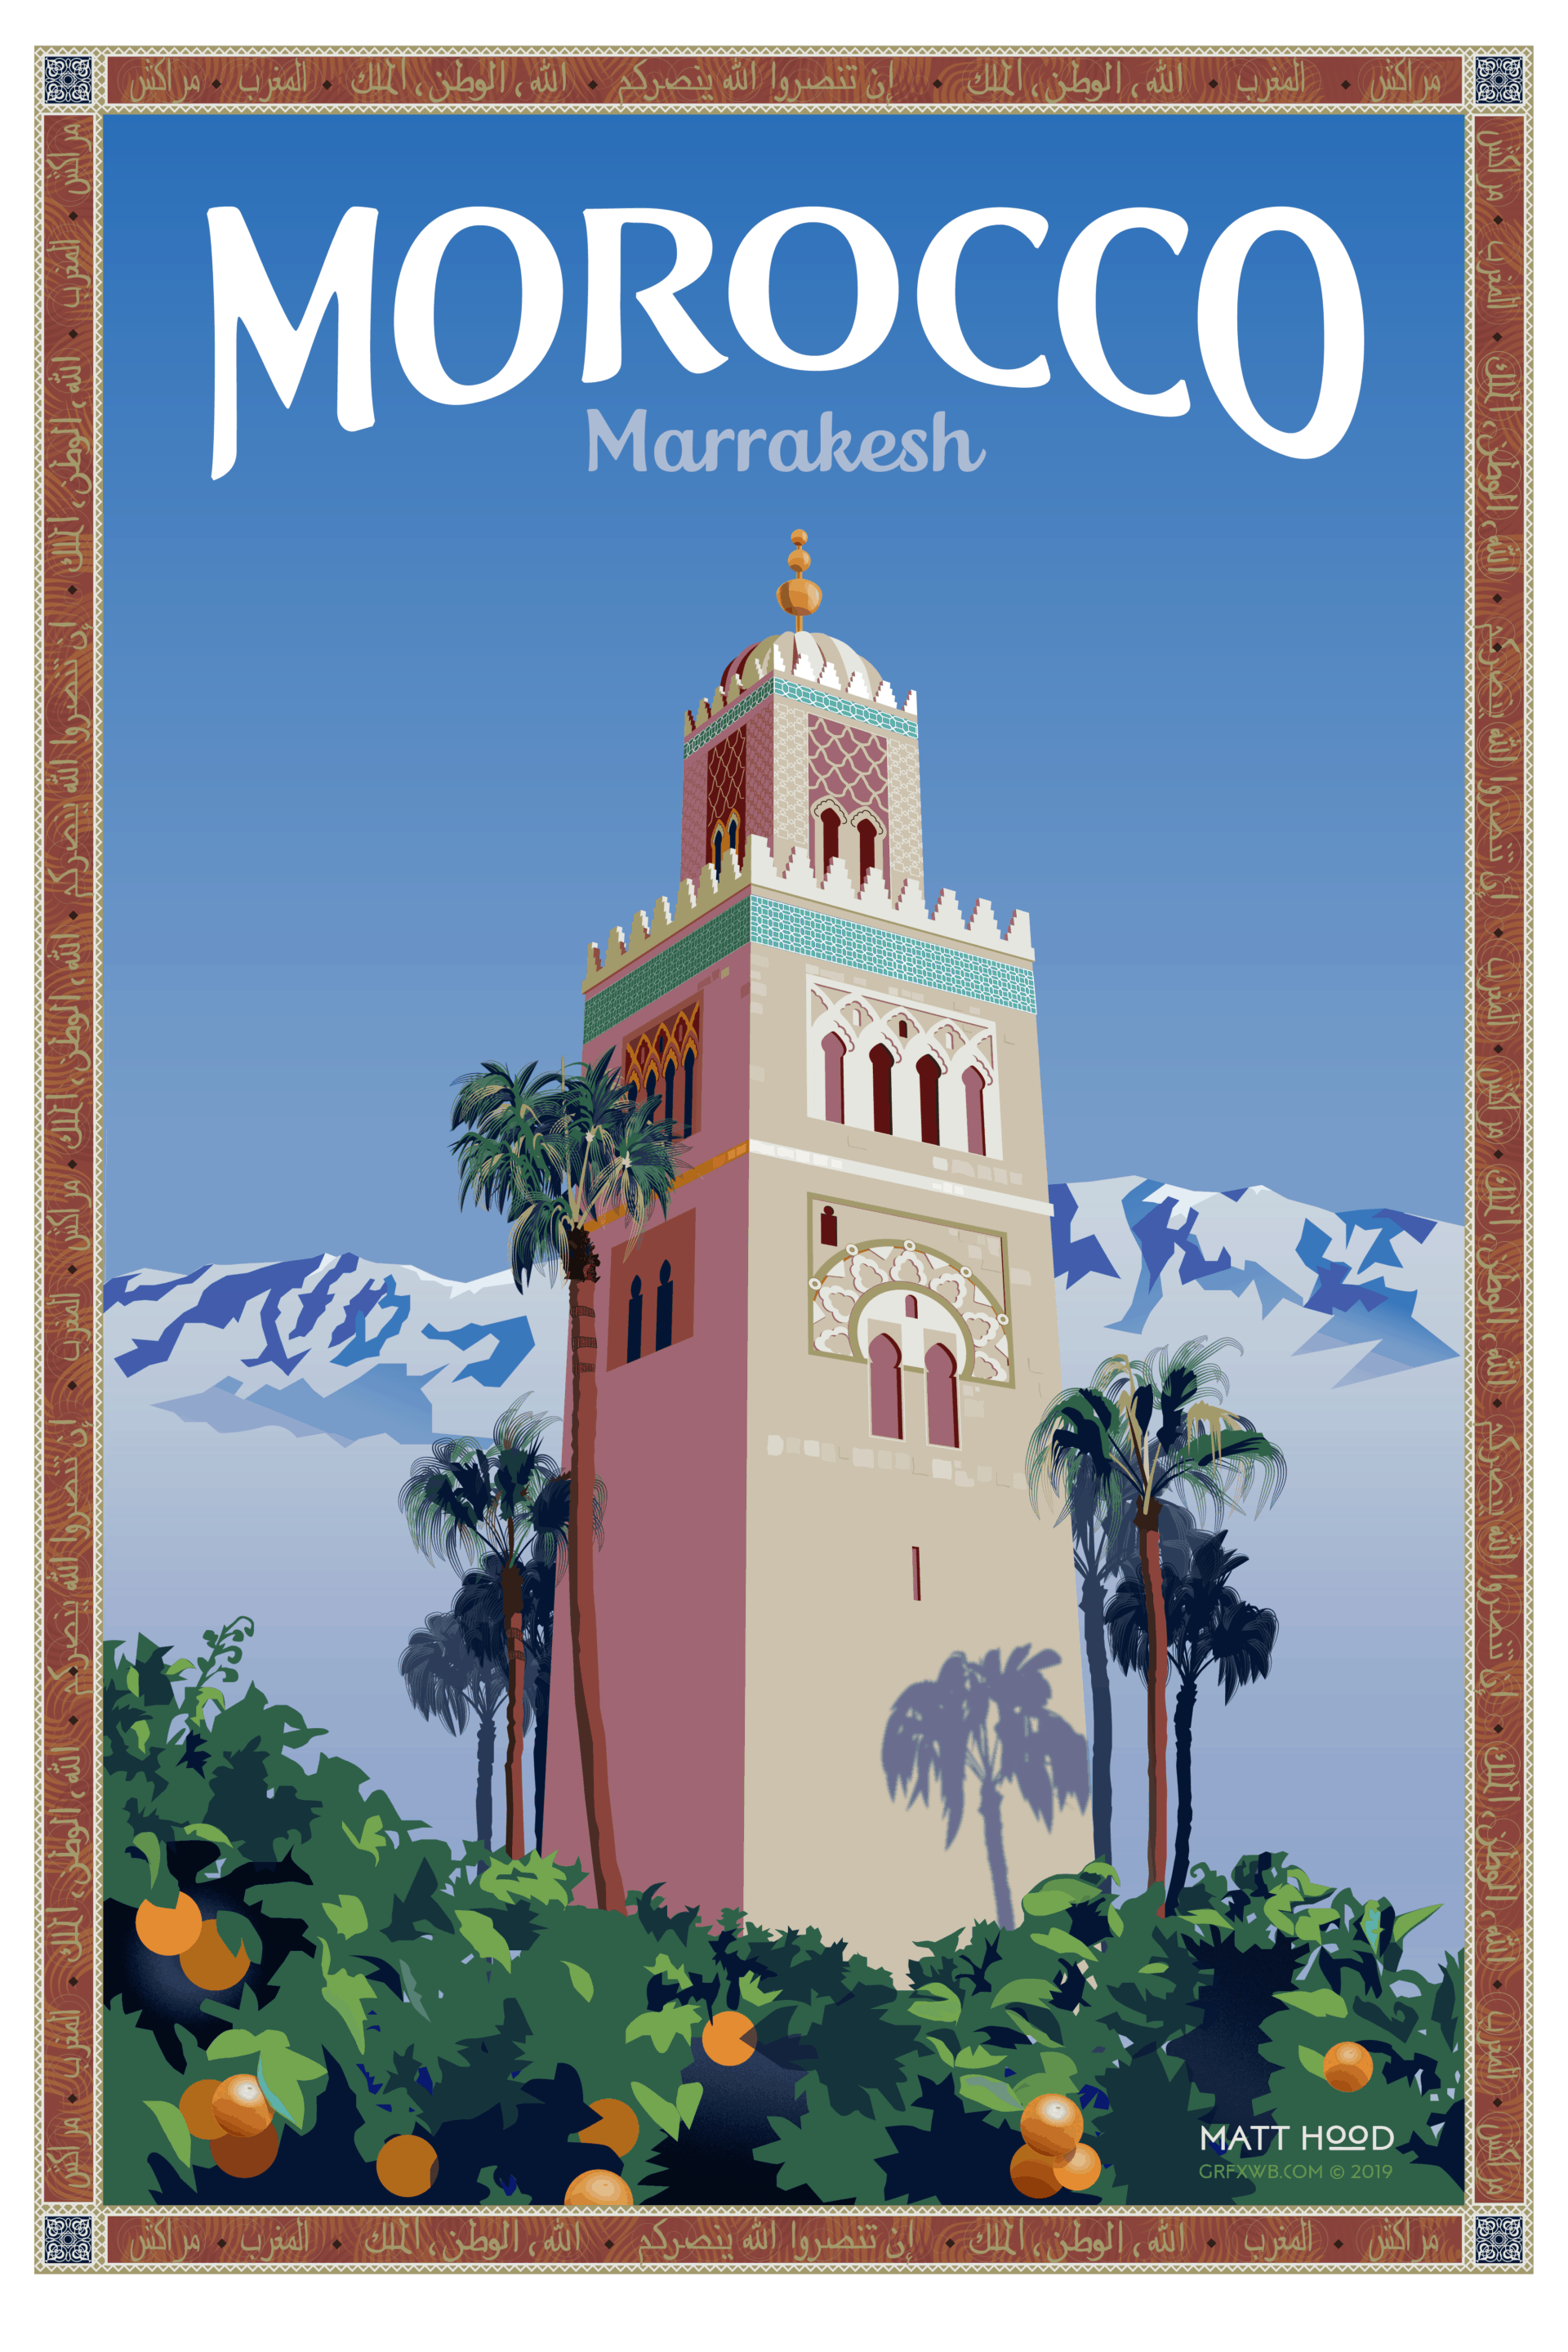 Marrakesh, Morocco Travel Poster